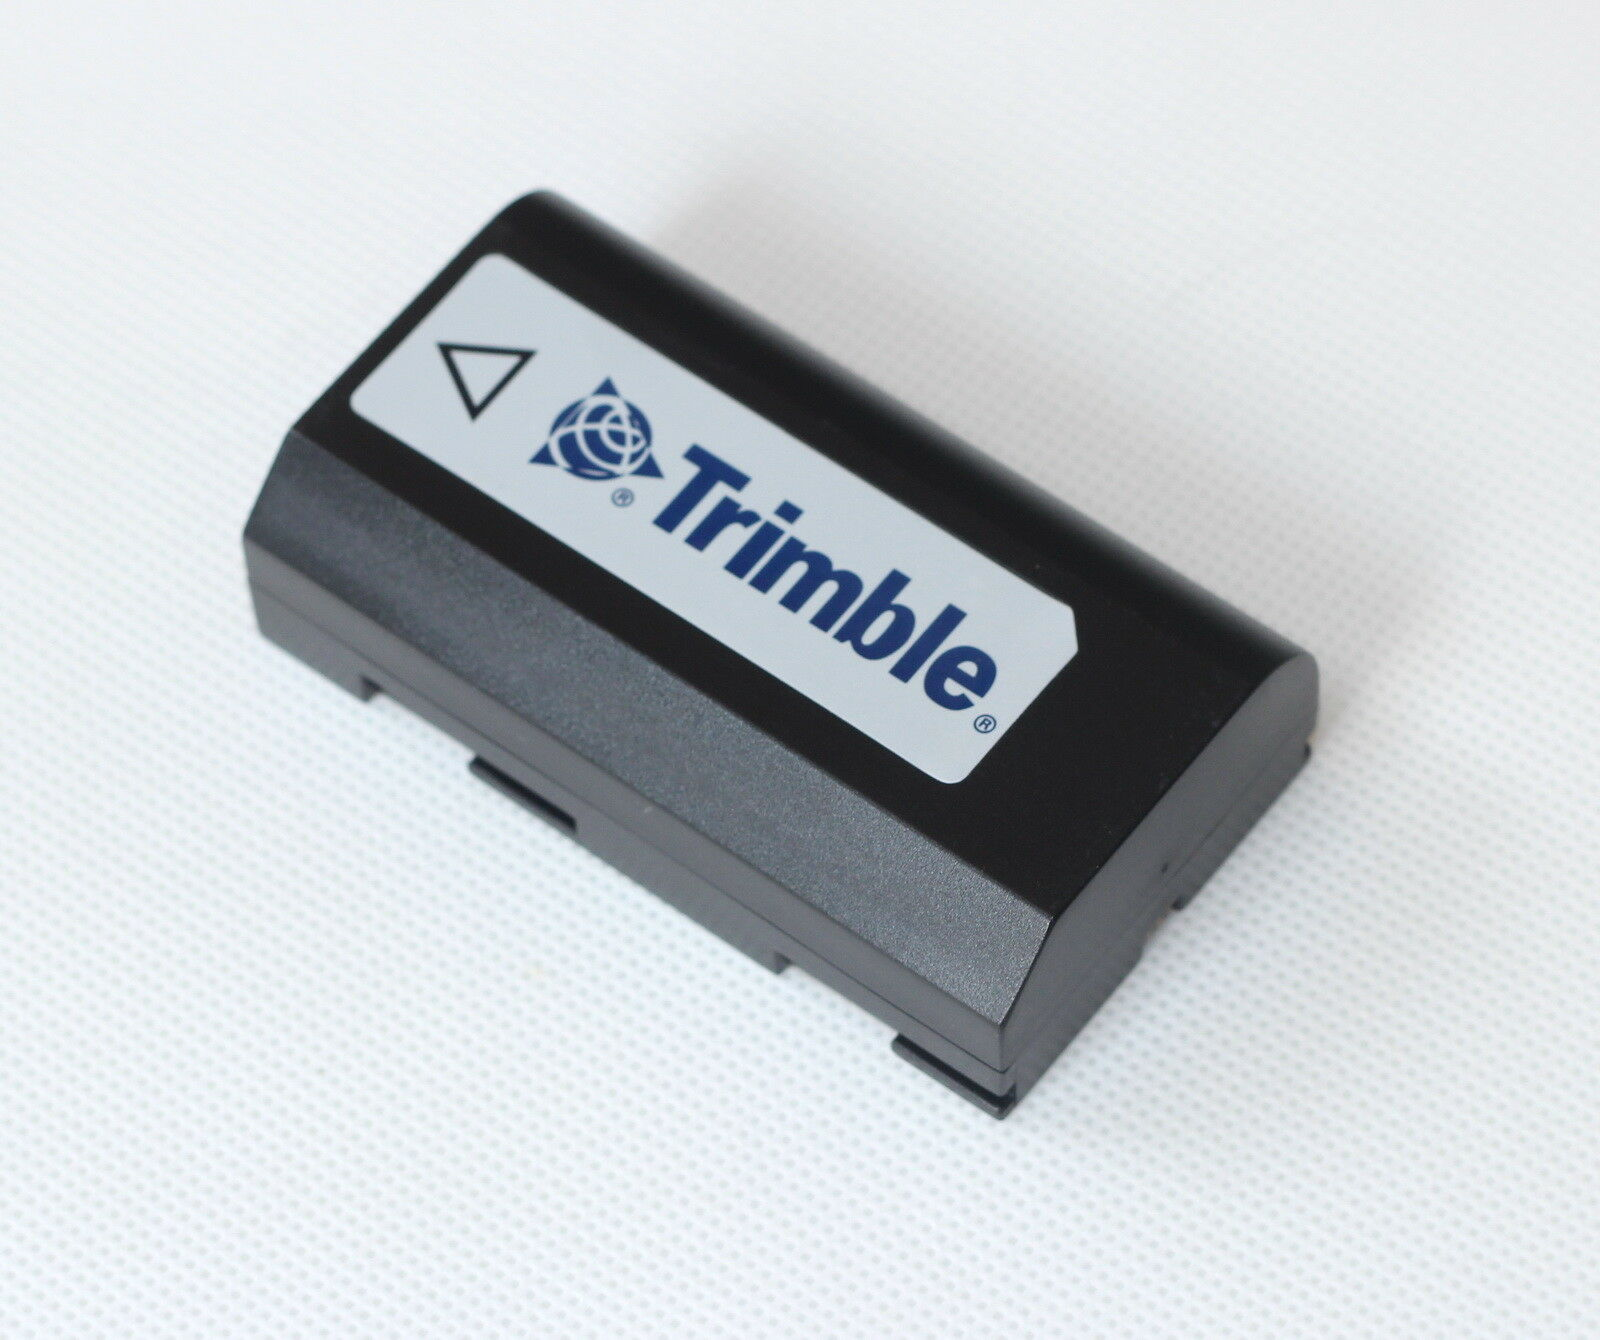 New Trimble 54344 Battery For Trimble Series GPS 5700/5800/R8/R7/R6/R8GNSS/GPS